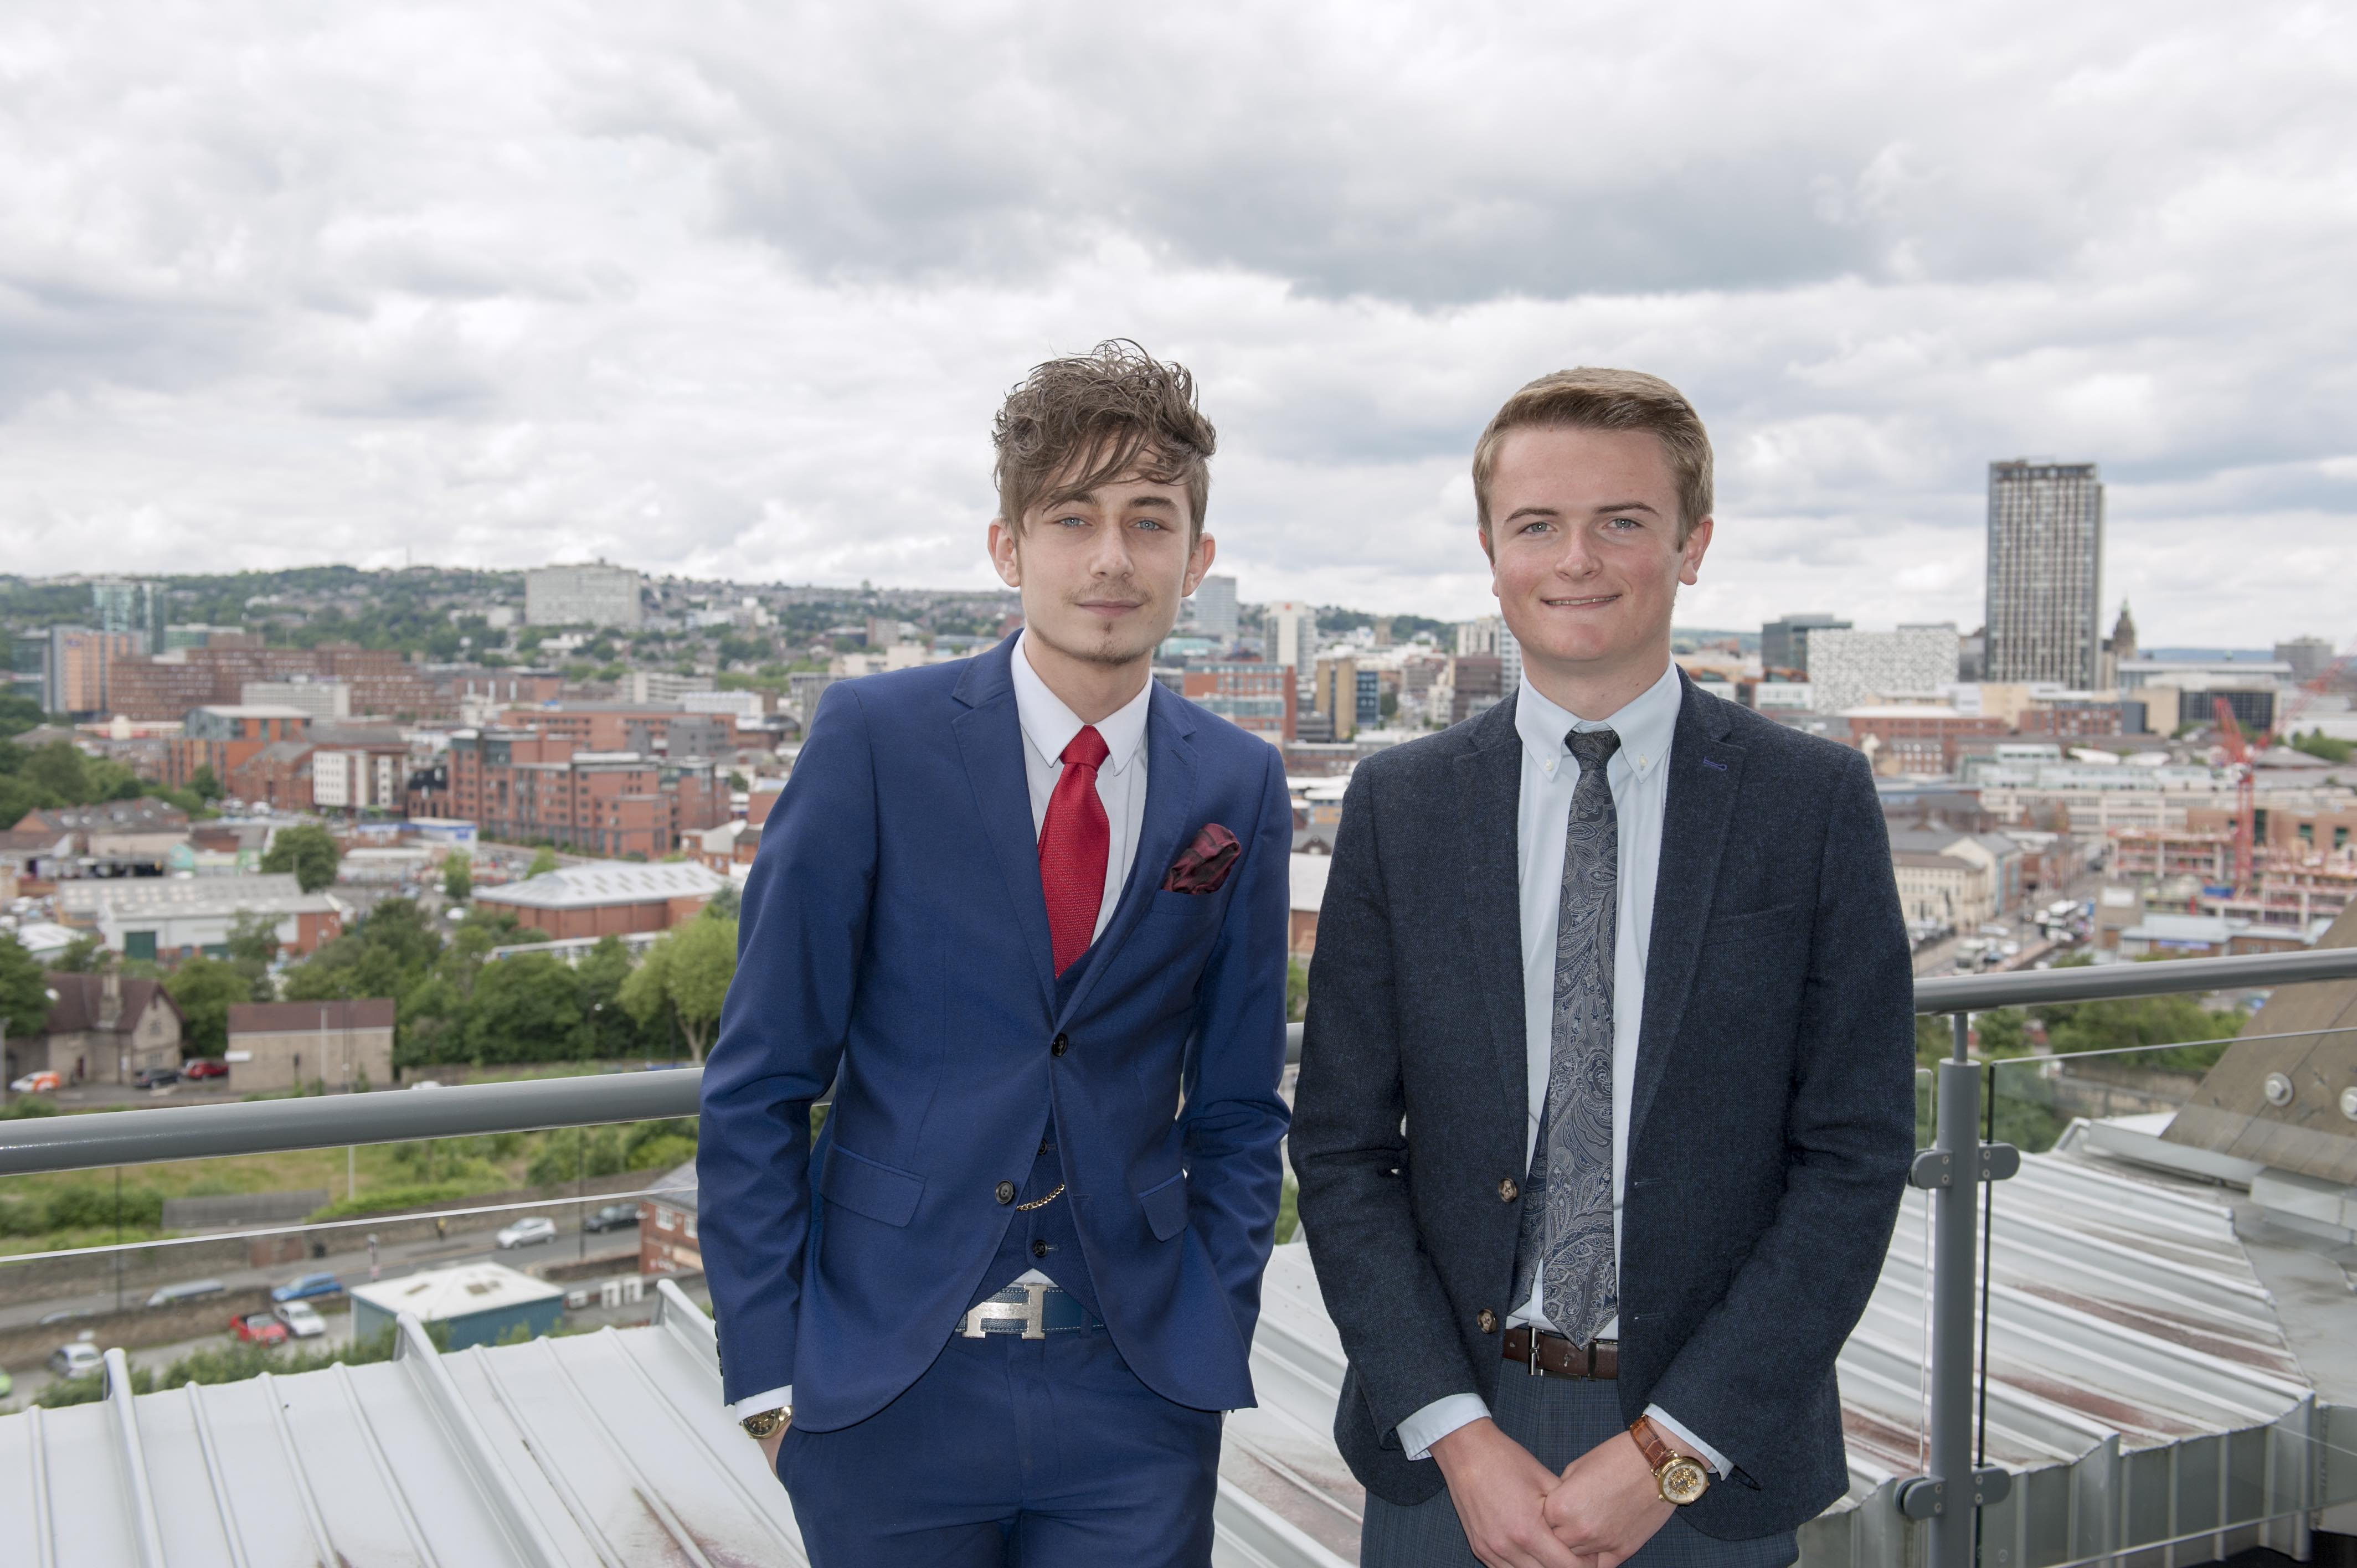 Teen Entrepreneurs Shortlisted For Sheffield Business Awards